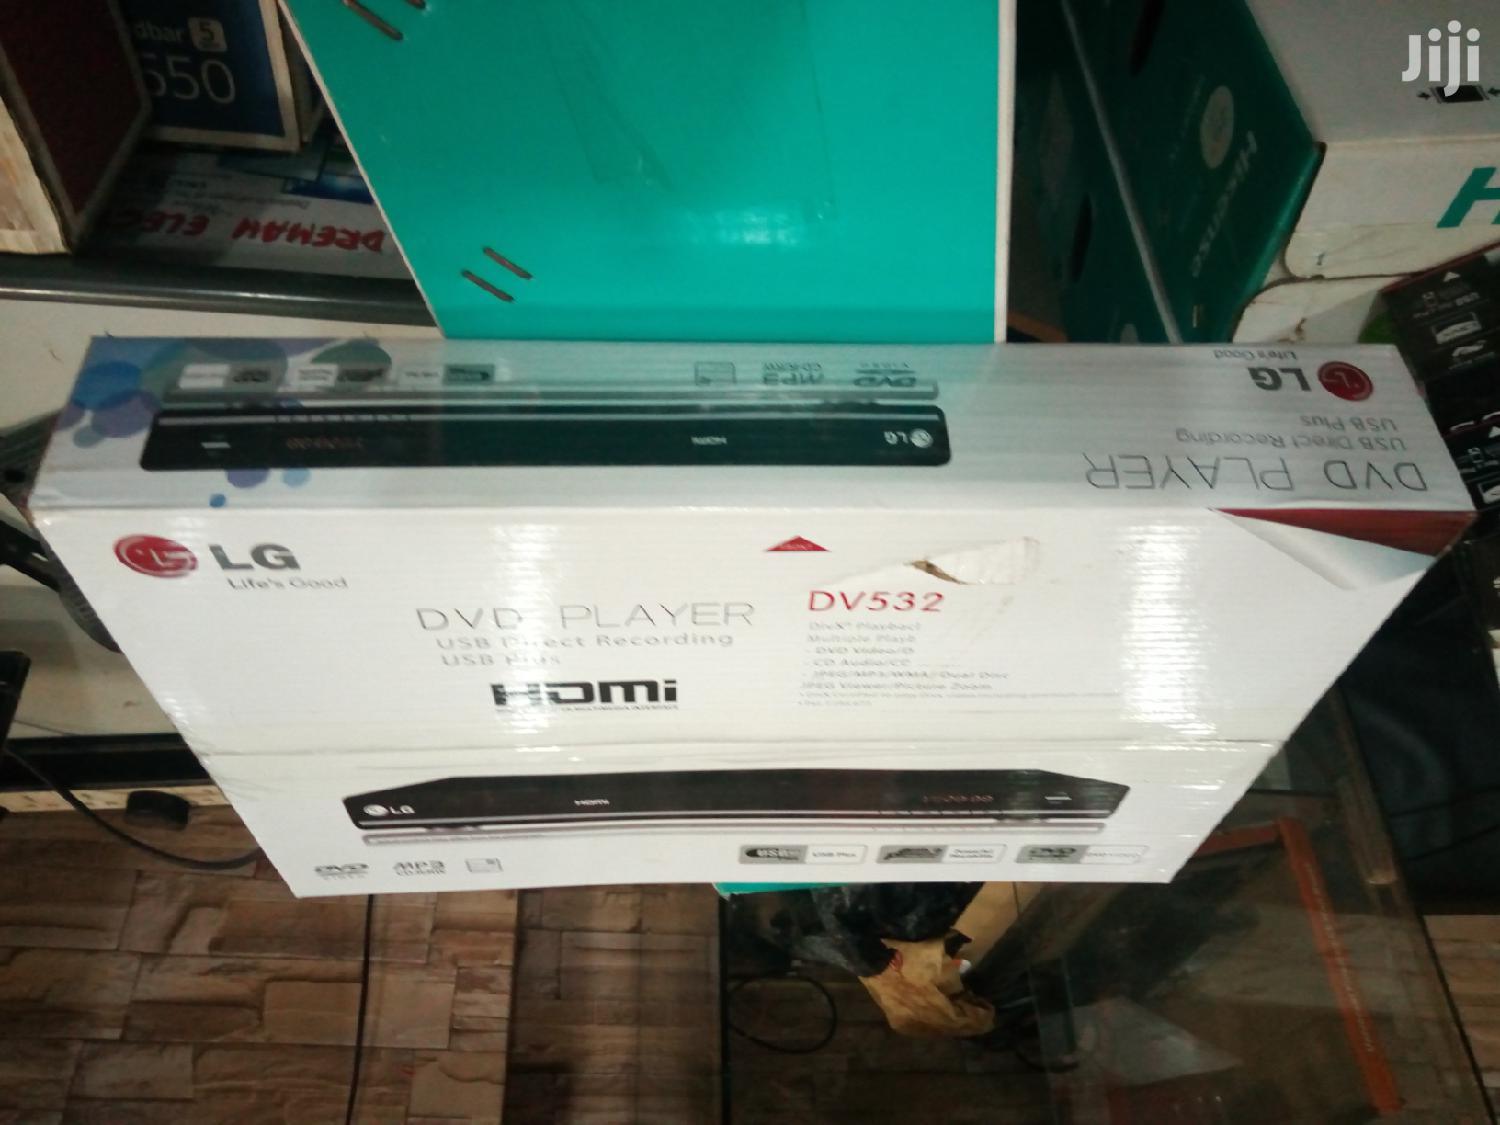 Archive: LG Dvd Player With Hdmi Port